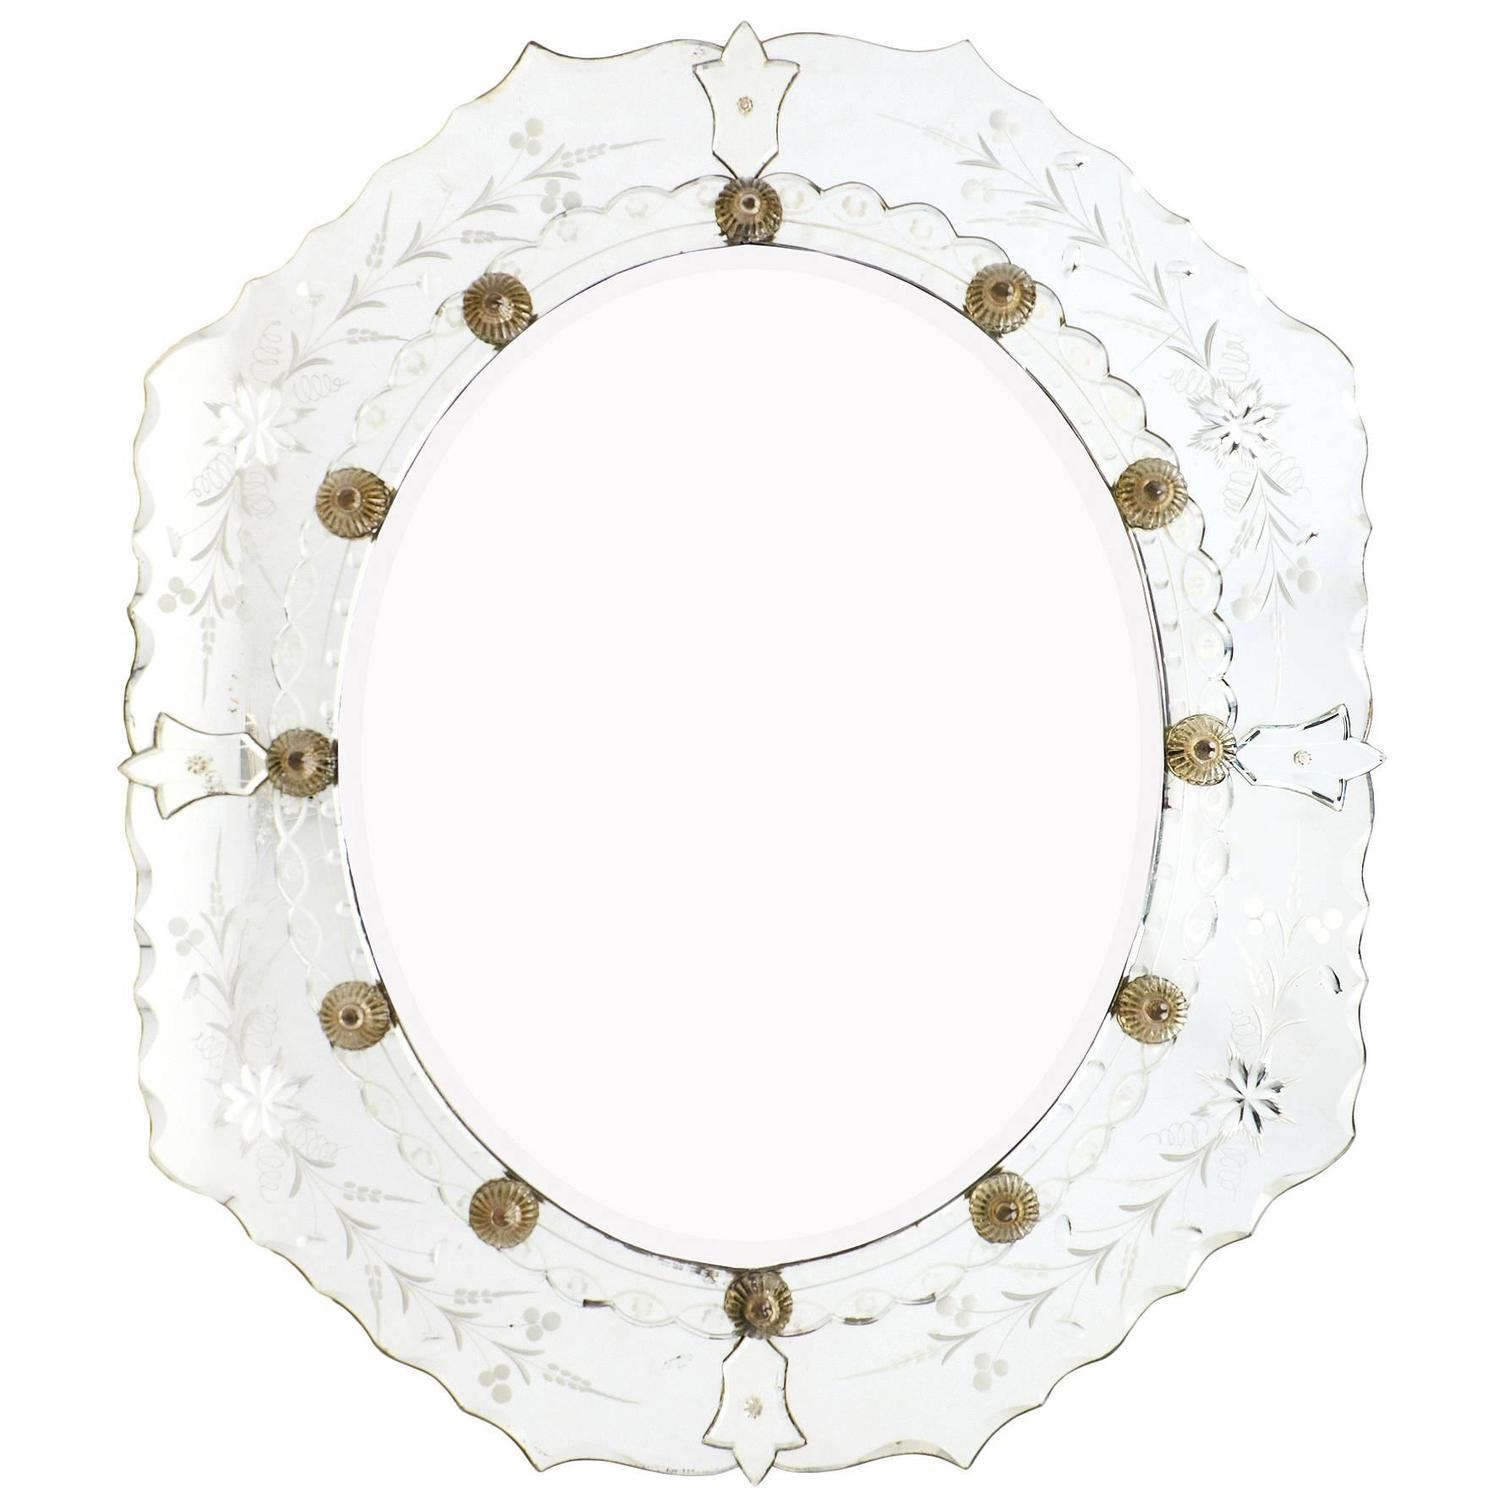 Antique Venetian Etched Mirror At 1Stdibs Inside Venetian Oval Mirror (Image 2 of 20)